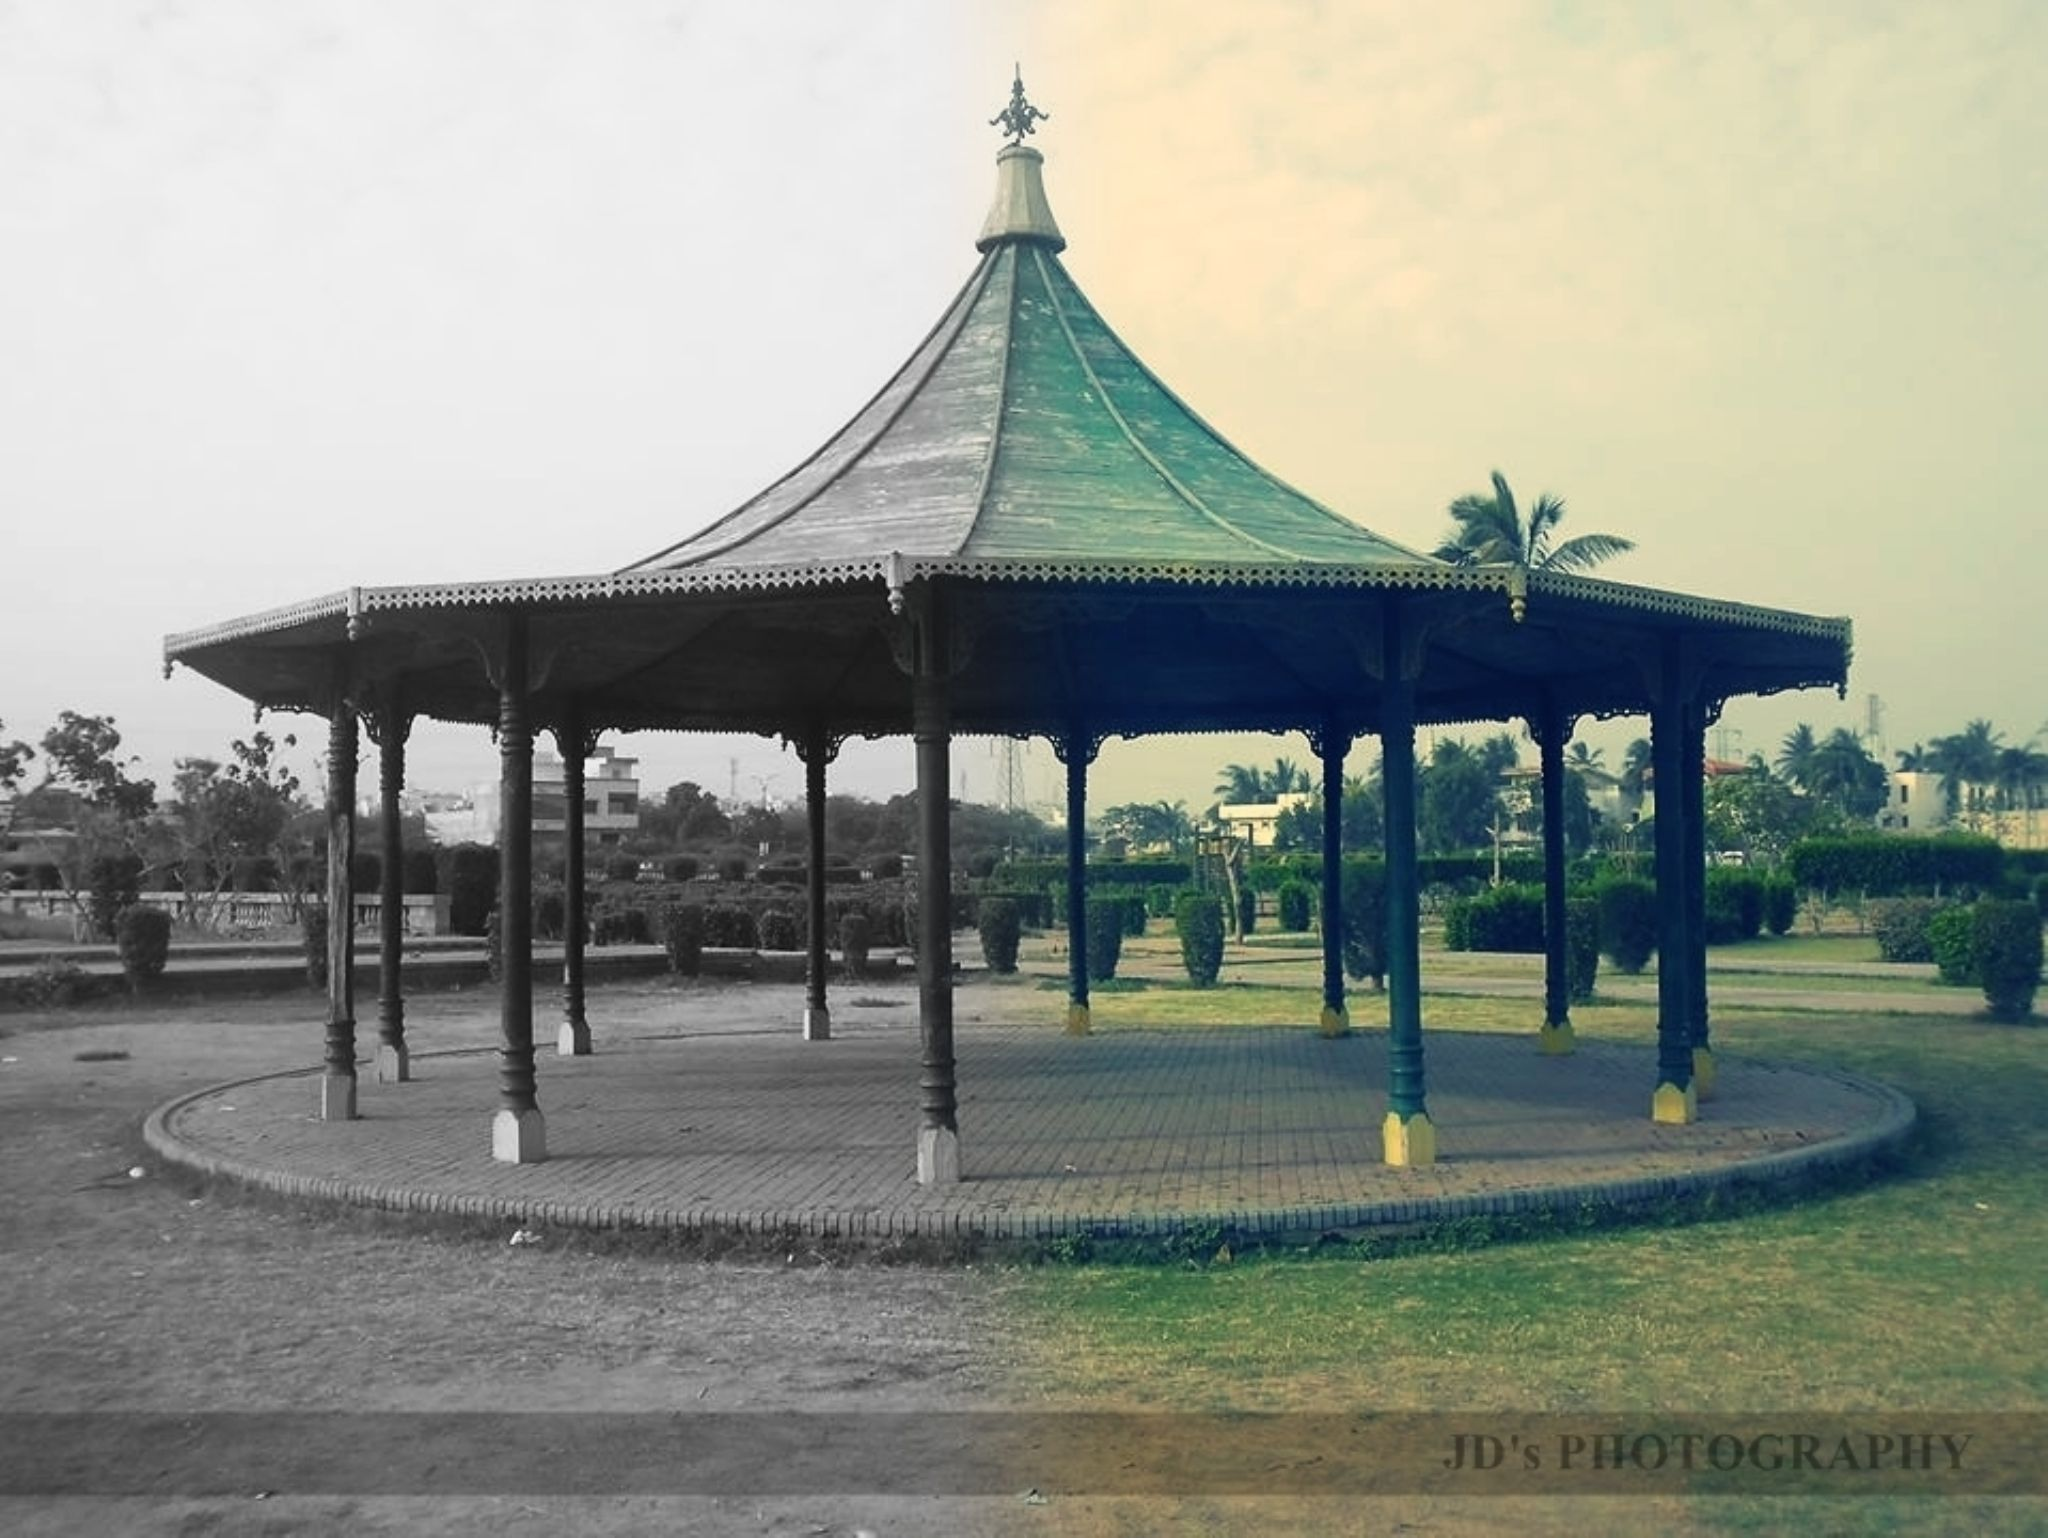 Half Coloured (JD's Photography) by jawwad.khalil.16